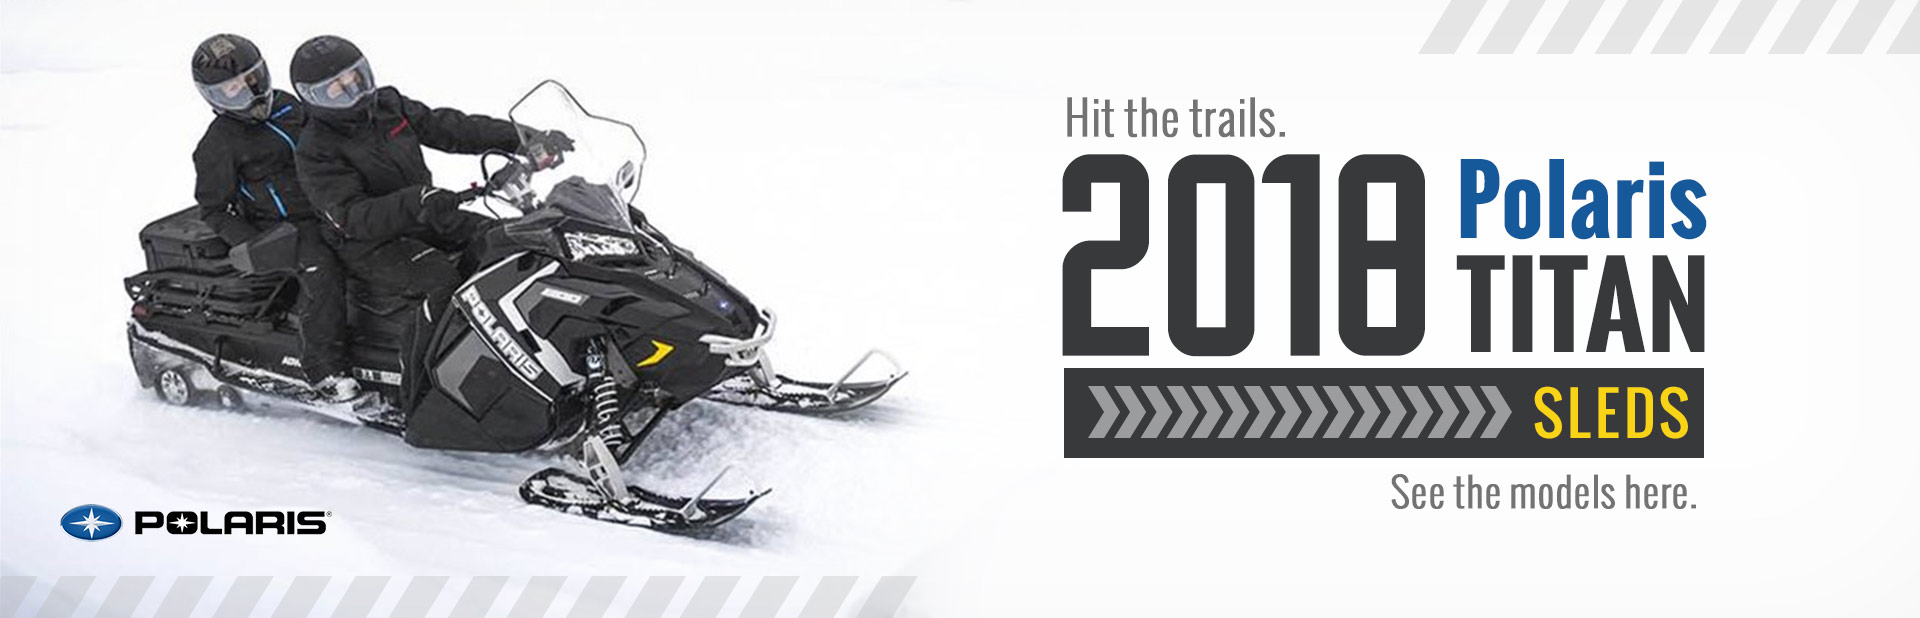 2018 Polaris TITAN Sleds: Click here to view the models.